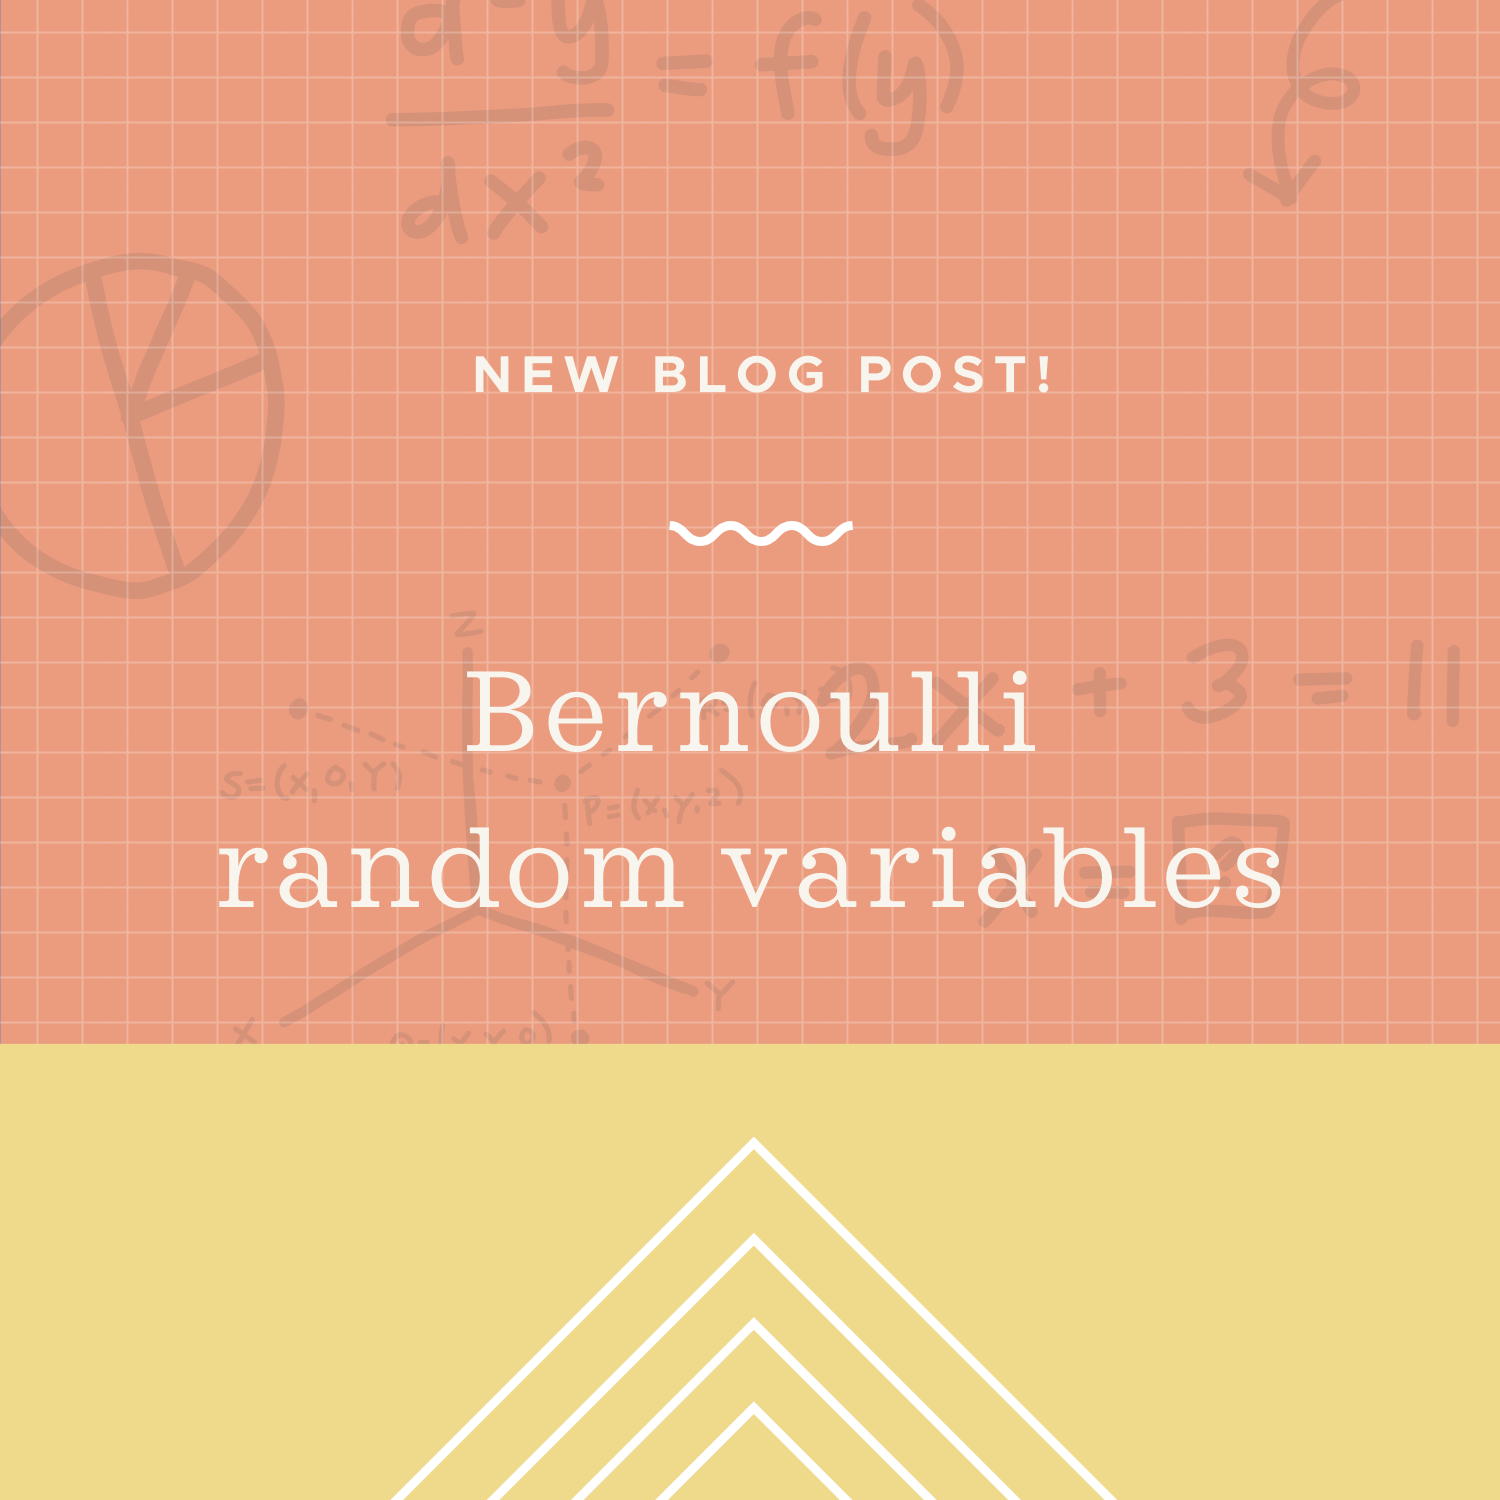 Bernoulli random variables blog post.jpeg